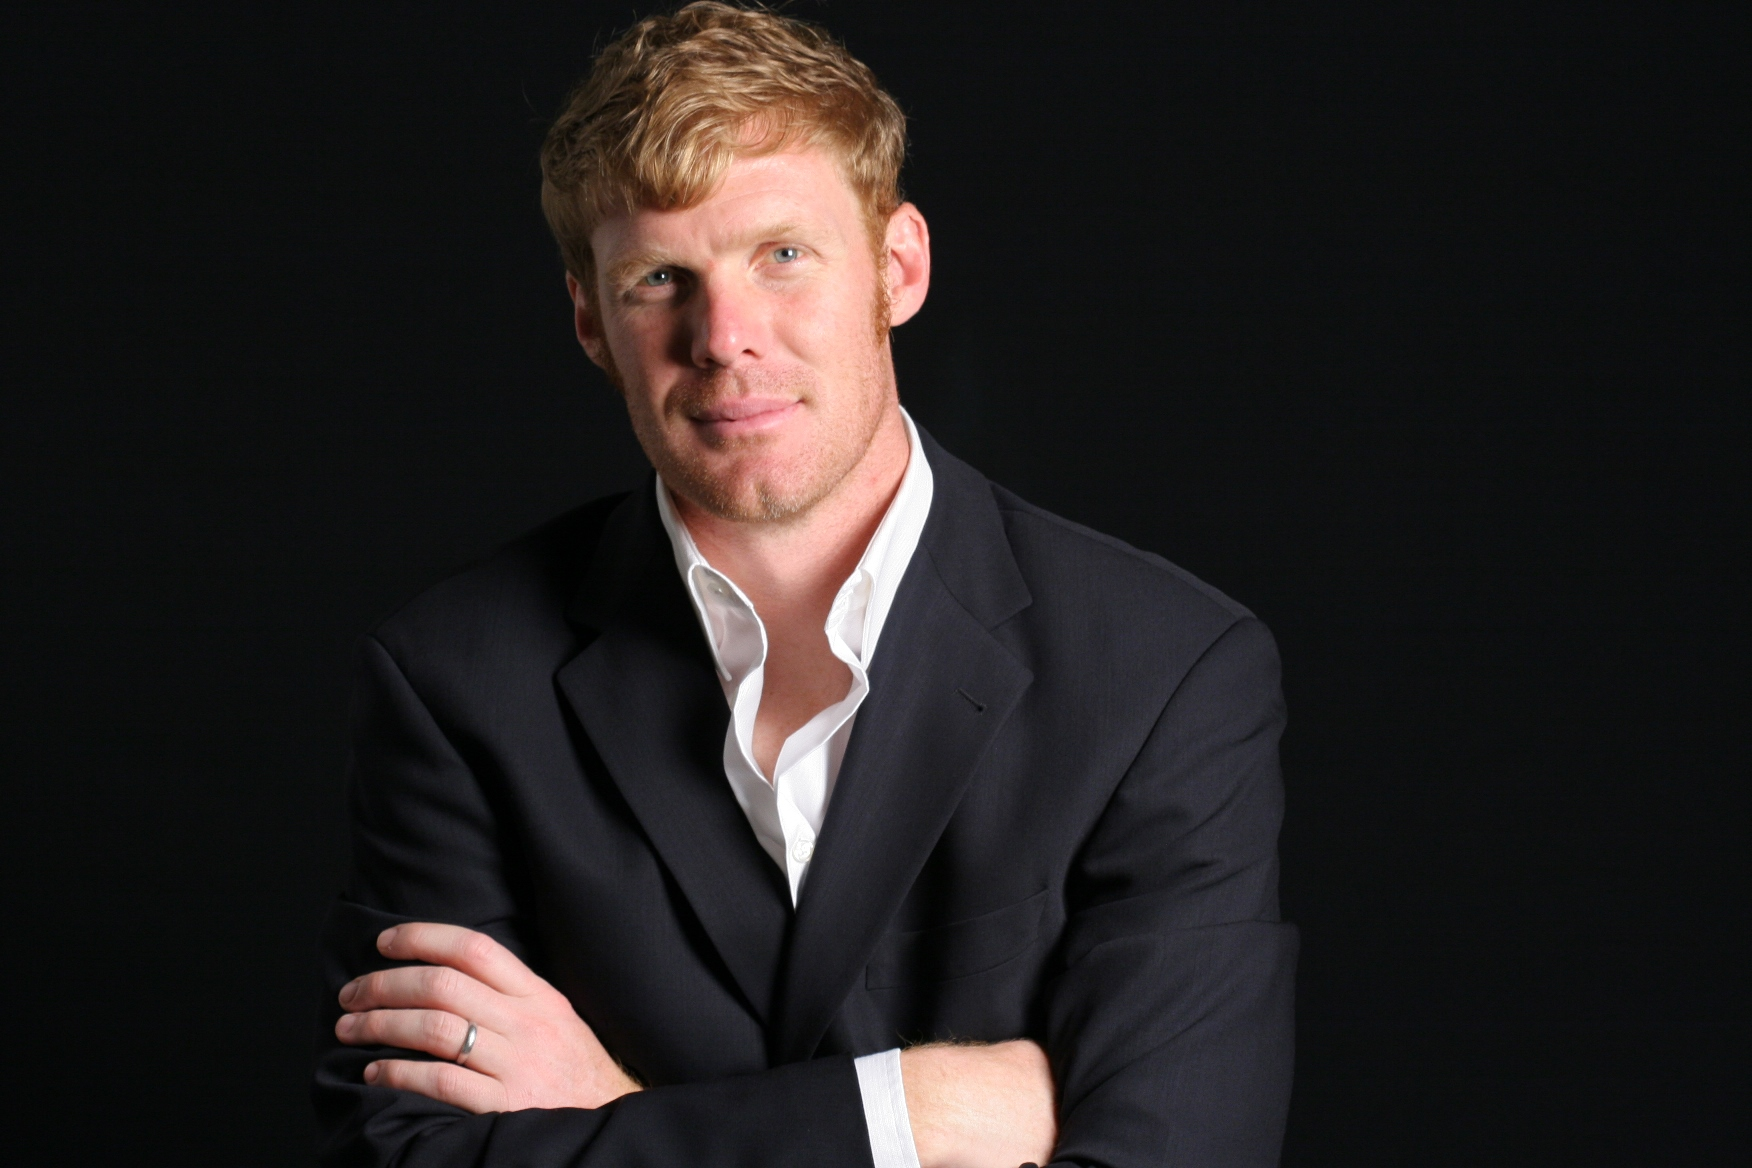 soccer analyst alexi lalas joins fox sports from espn